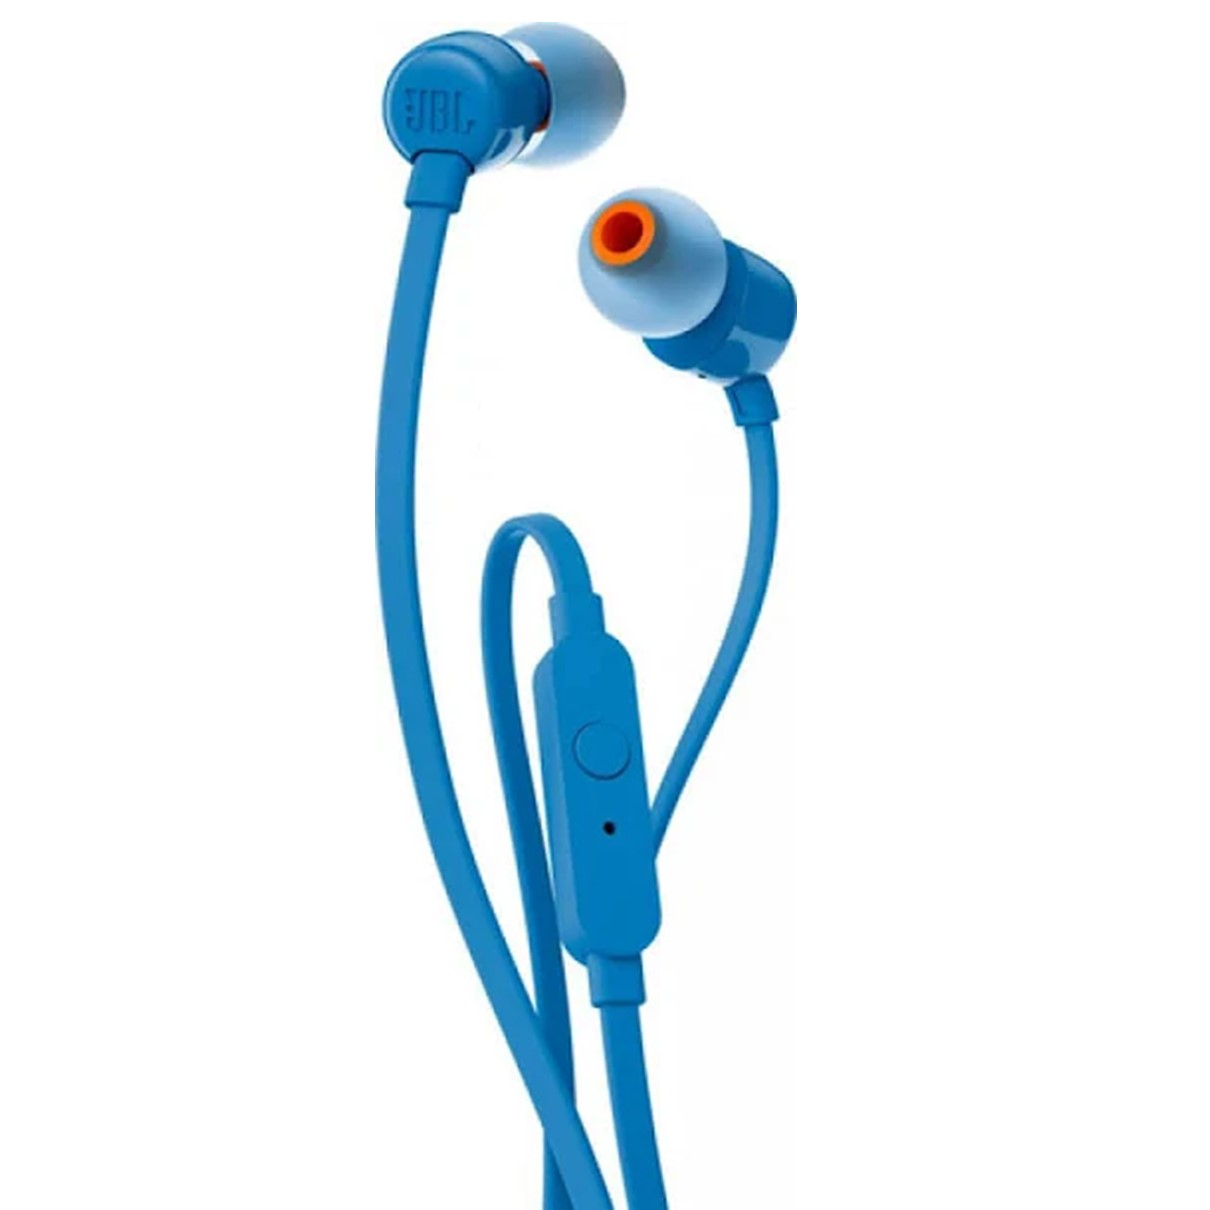 AURICULARES INTRAUDITIVOS JBL T110 BLUE / PURE BASS / DRIVERS 9MM / CABLE PLANO / MICROFONO